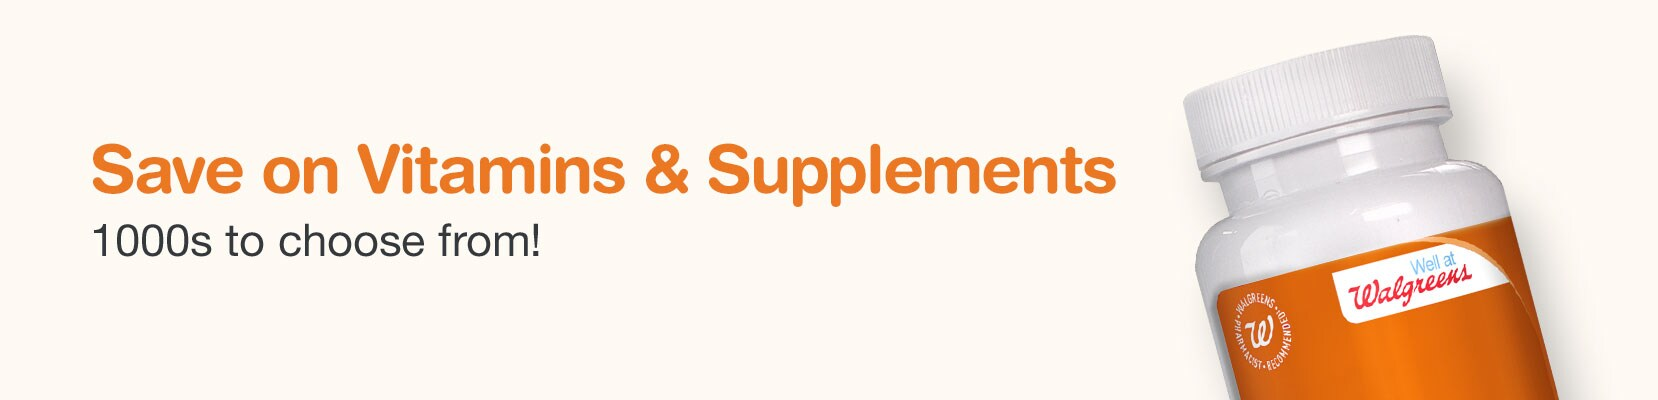 Save on Vitamins & Supplements. 1000s to choose from!